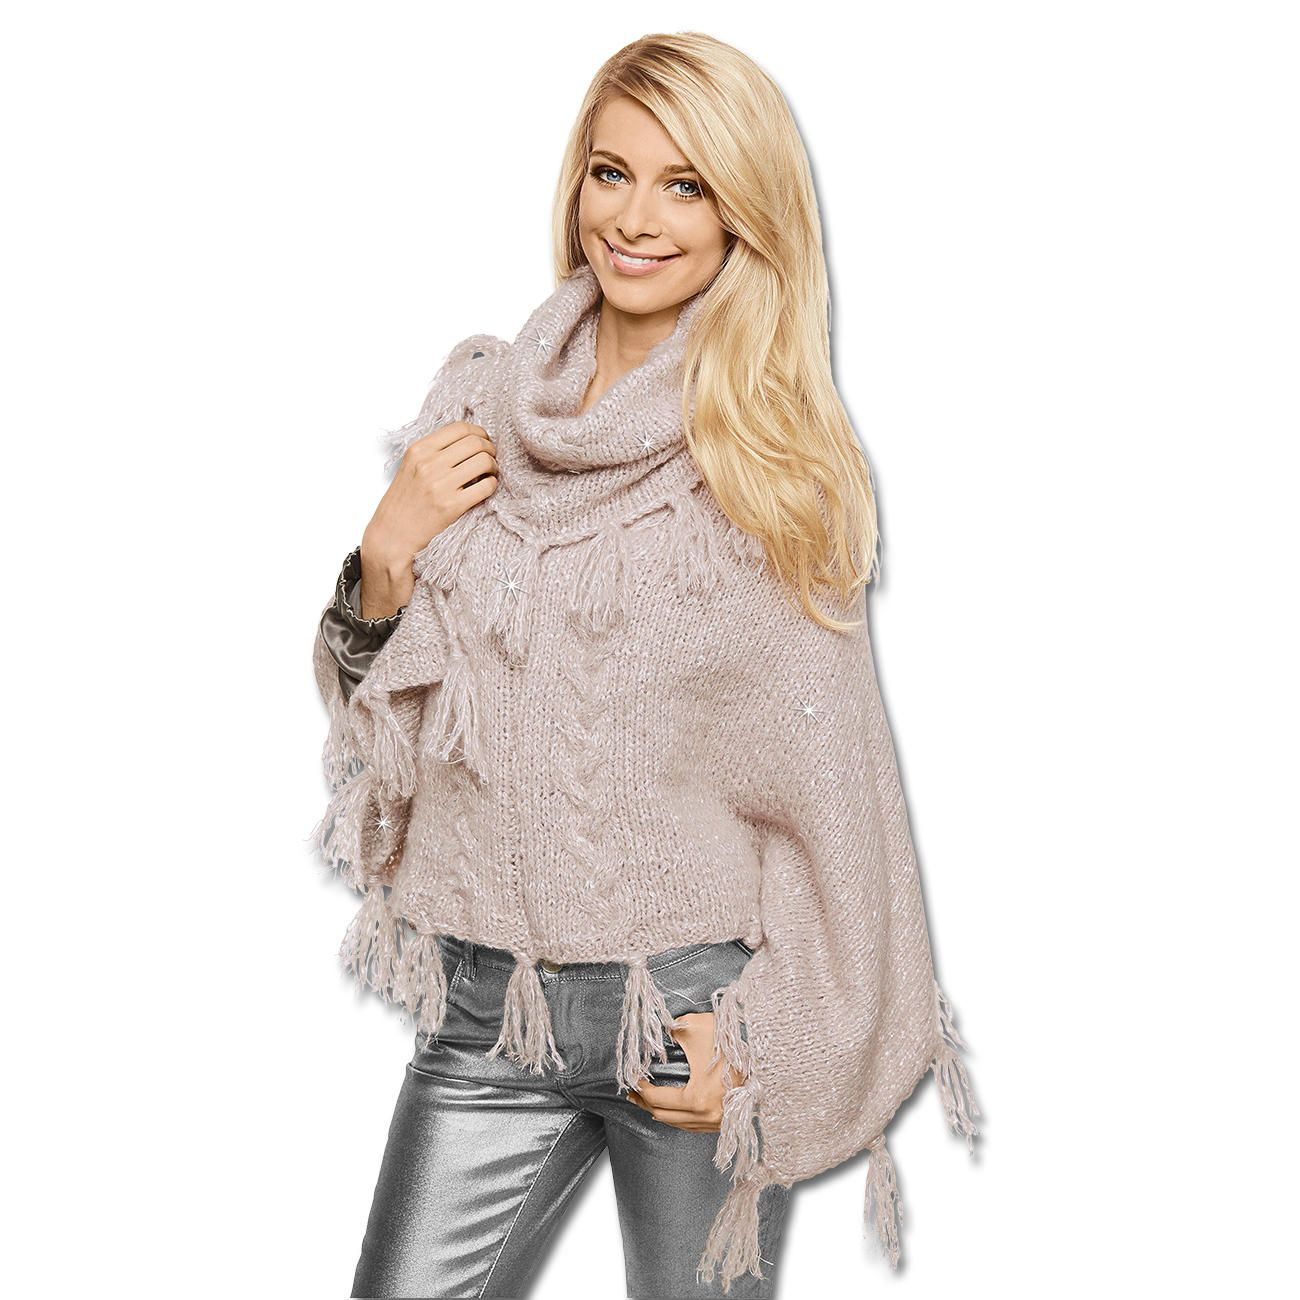 Modell 105 4 poncho aus prato von junghans wolle - Junghanns wolle ...